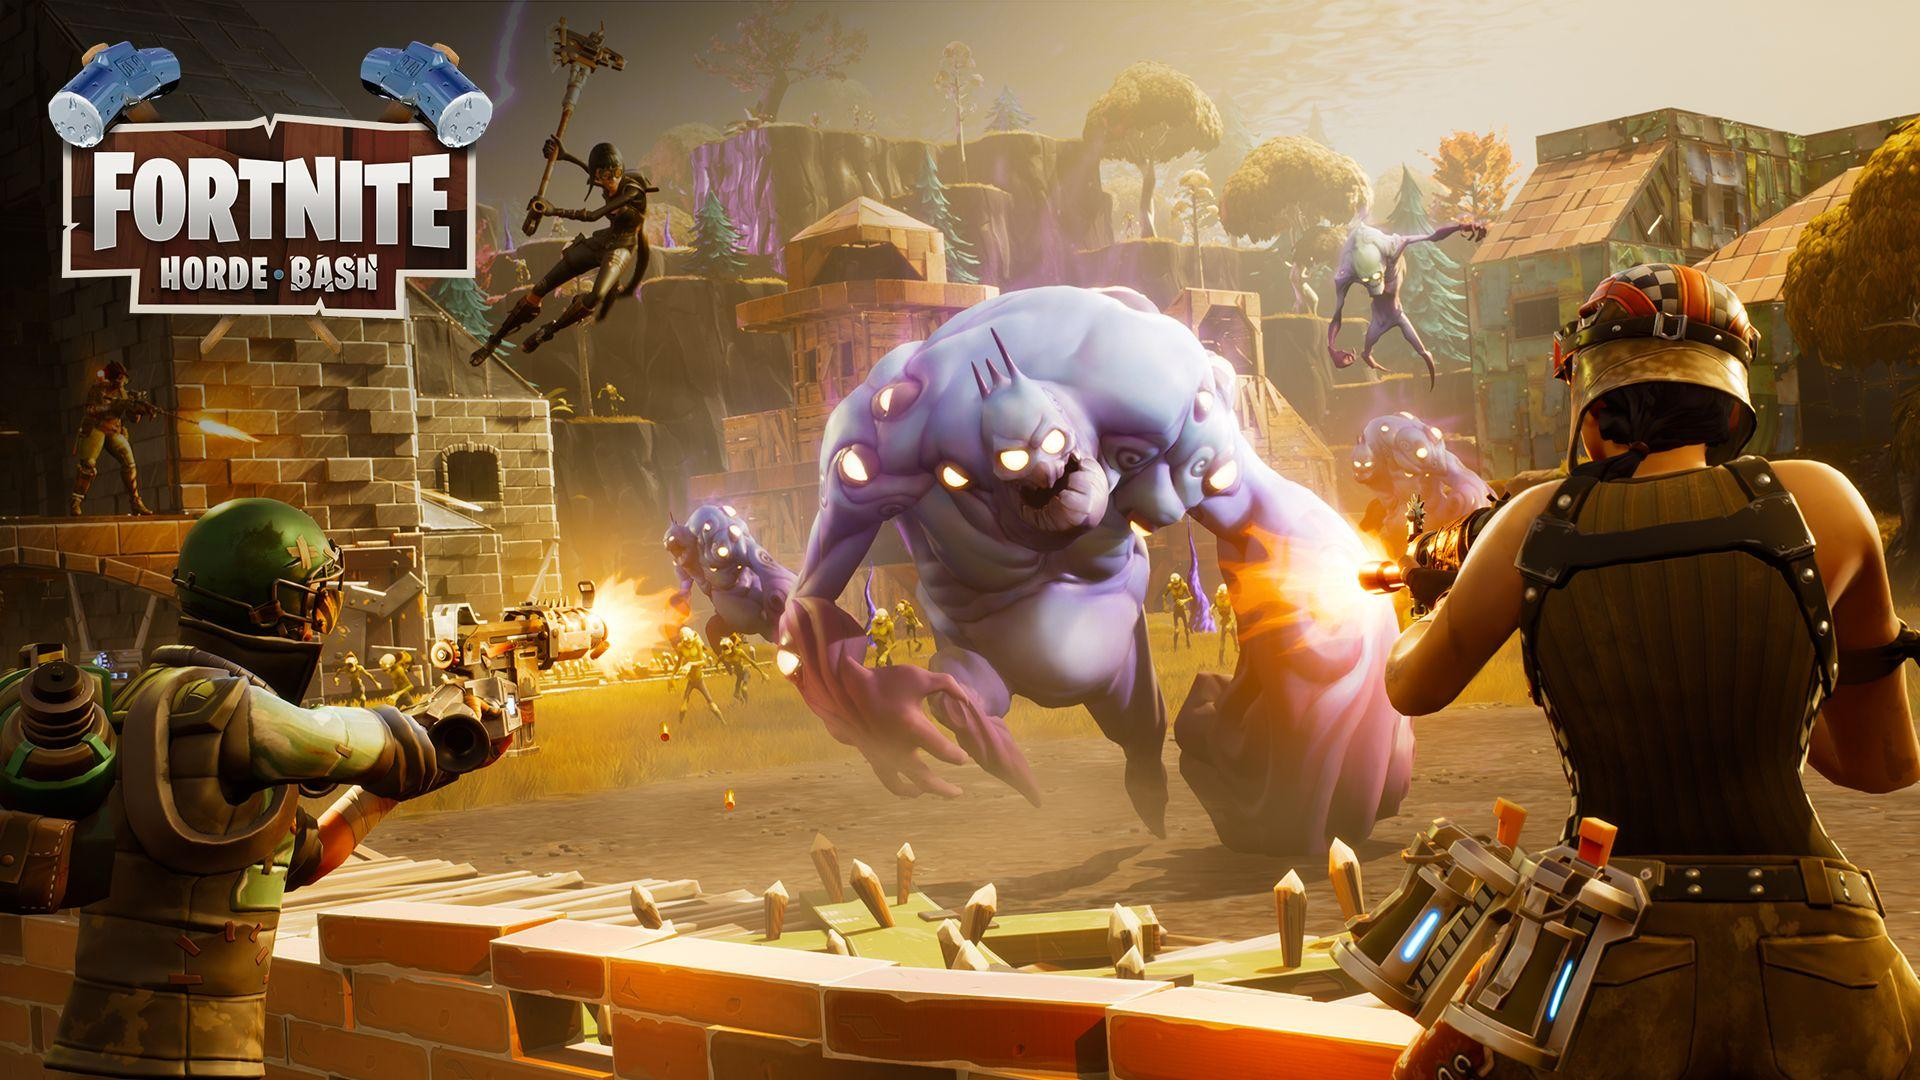 Fortnite Save The World Wallpapers Top Free Fortnite Save The World Backgrounds Wallpaperaccess